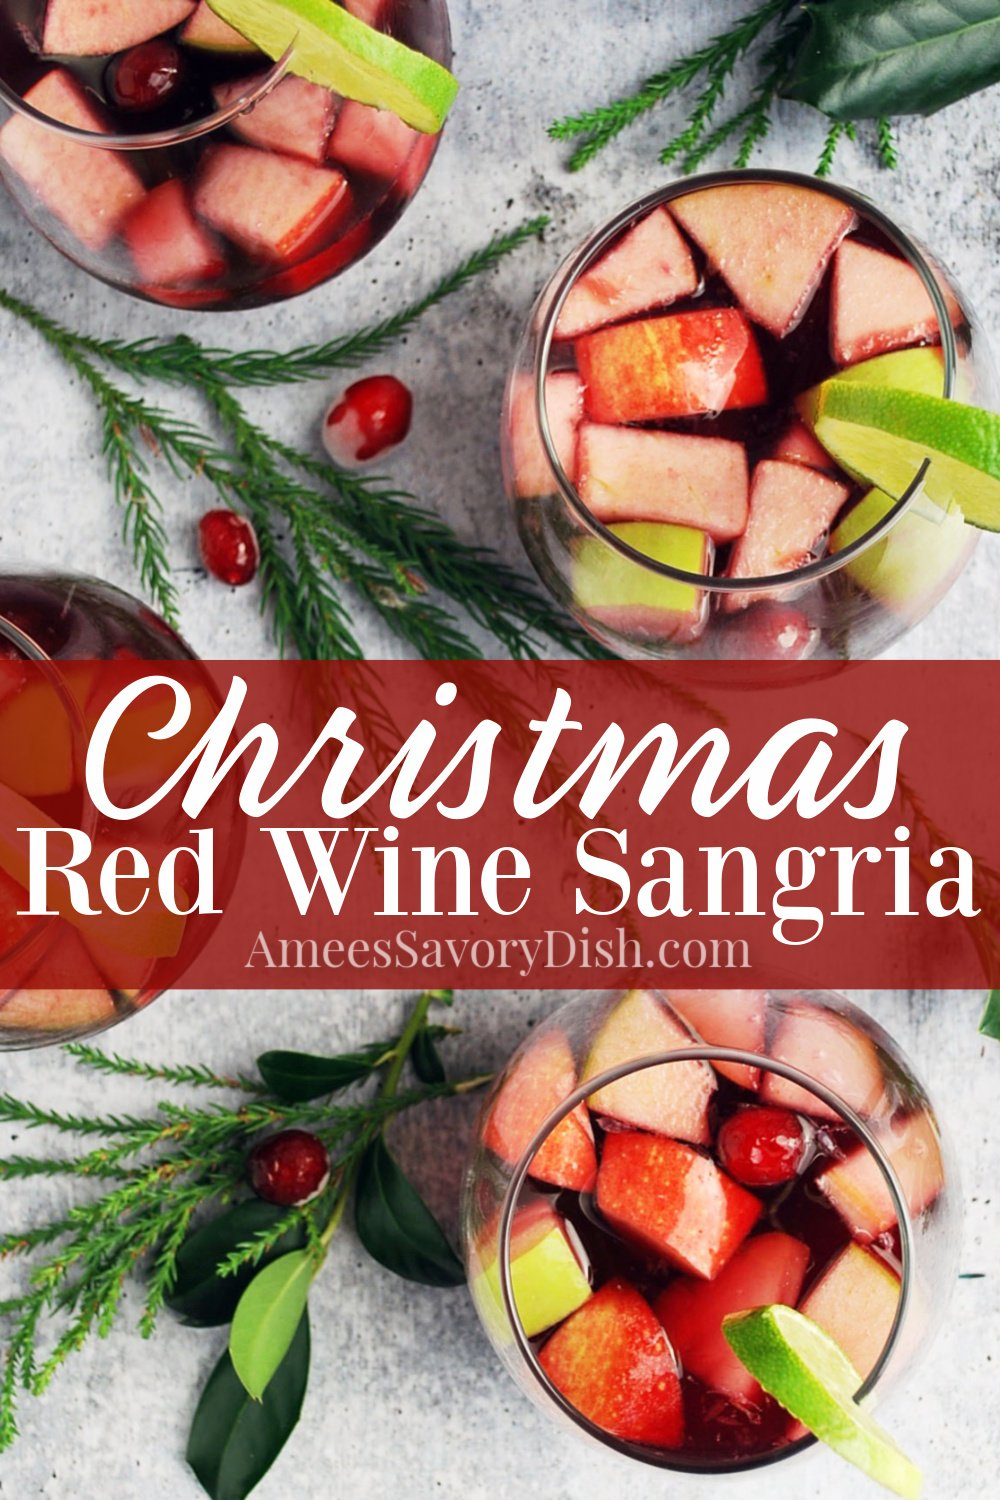 Red Wine Christmas Sangria makes a beautifully festive cocktail made with red wine, brandy, liqueur, fresh fruit, and agave nectar.  I highly recommend doubling this recipe for parties because it disappears fast! #christmascocktails #christmassangria #holidaysangria #sangriarecipe #redwinesangria via @Ameessavorydish